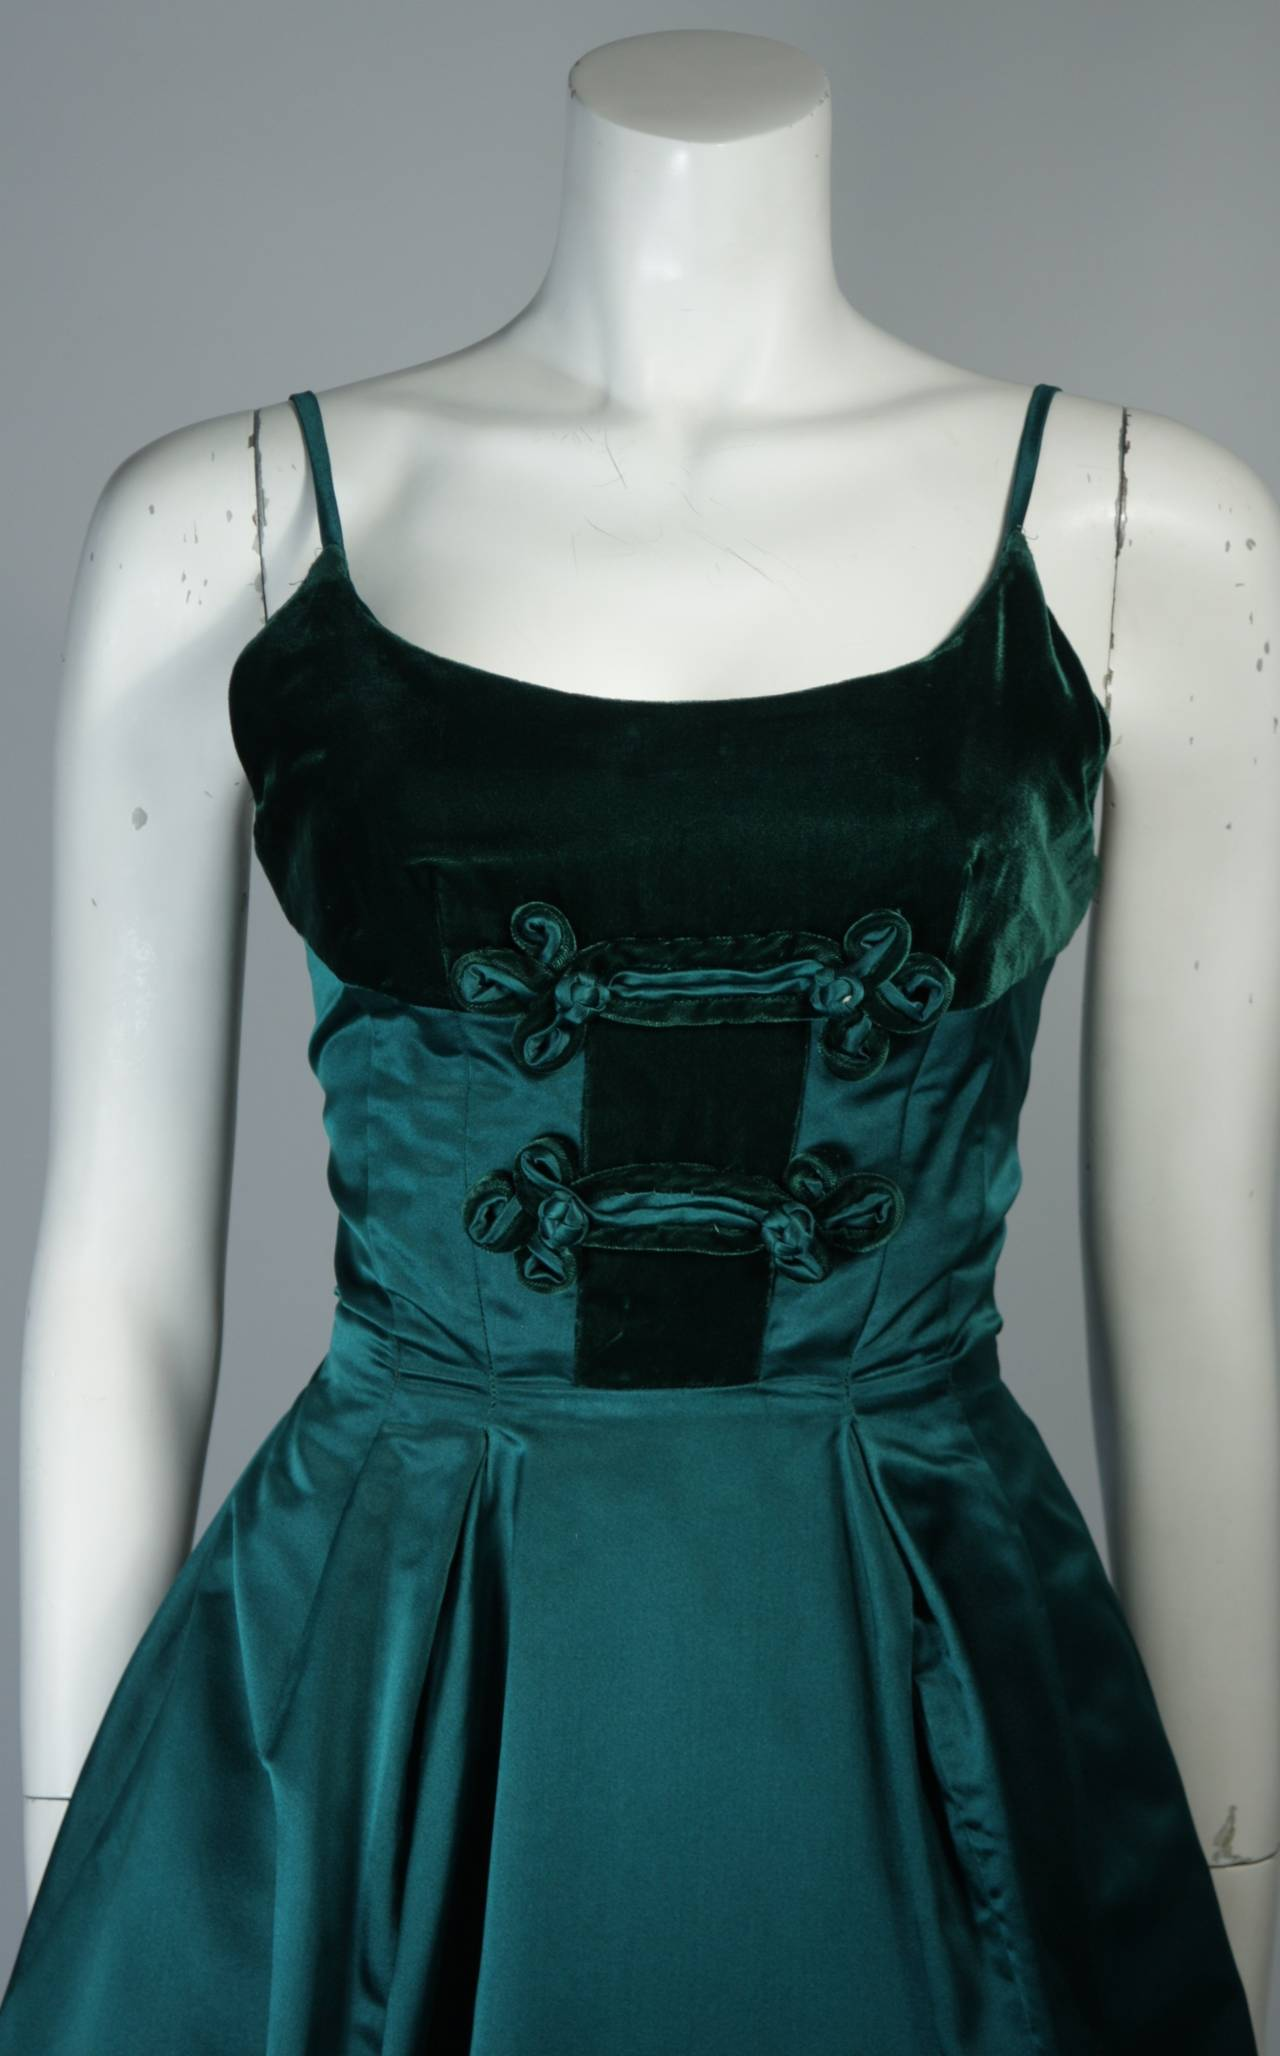 Black Oleg Cassini Emerald Silk and Velvet Applique Dress Size Small For Sale